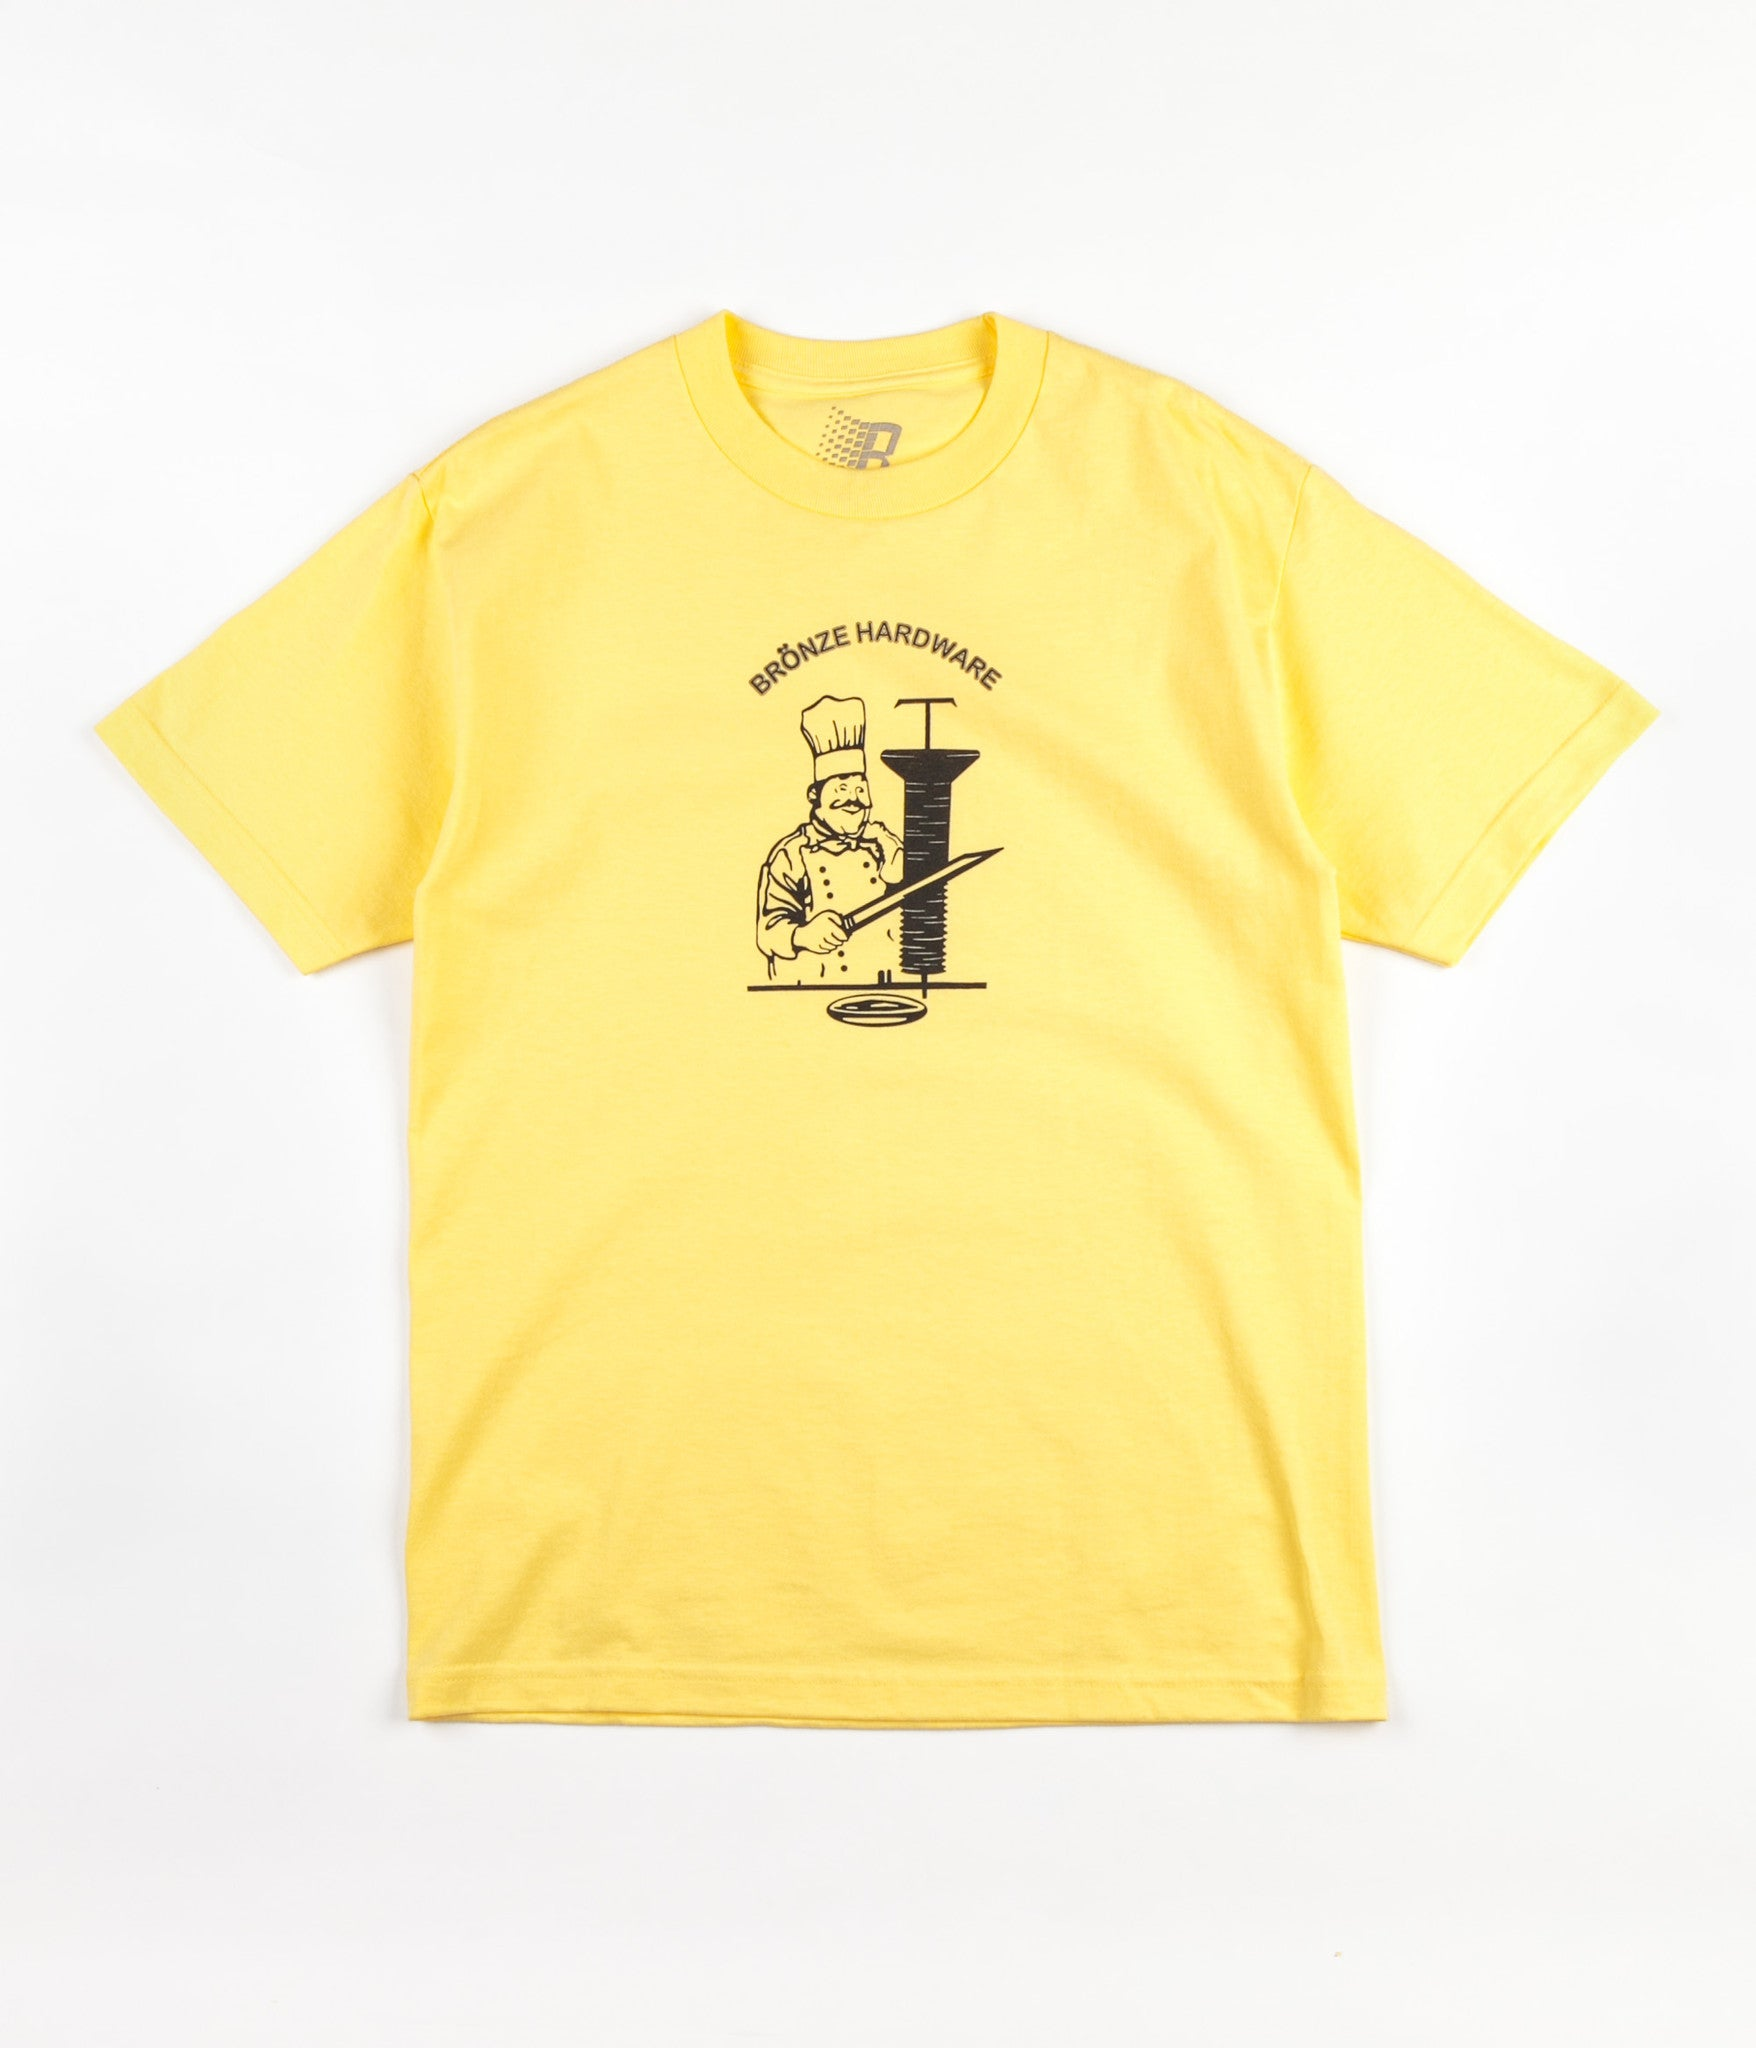 Bronze 56k Kebab T-Shirt - Yellow / Black